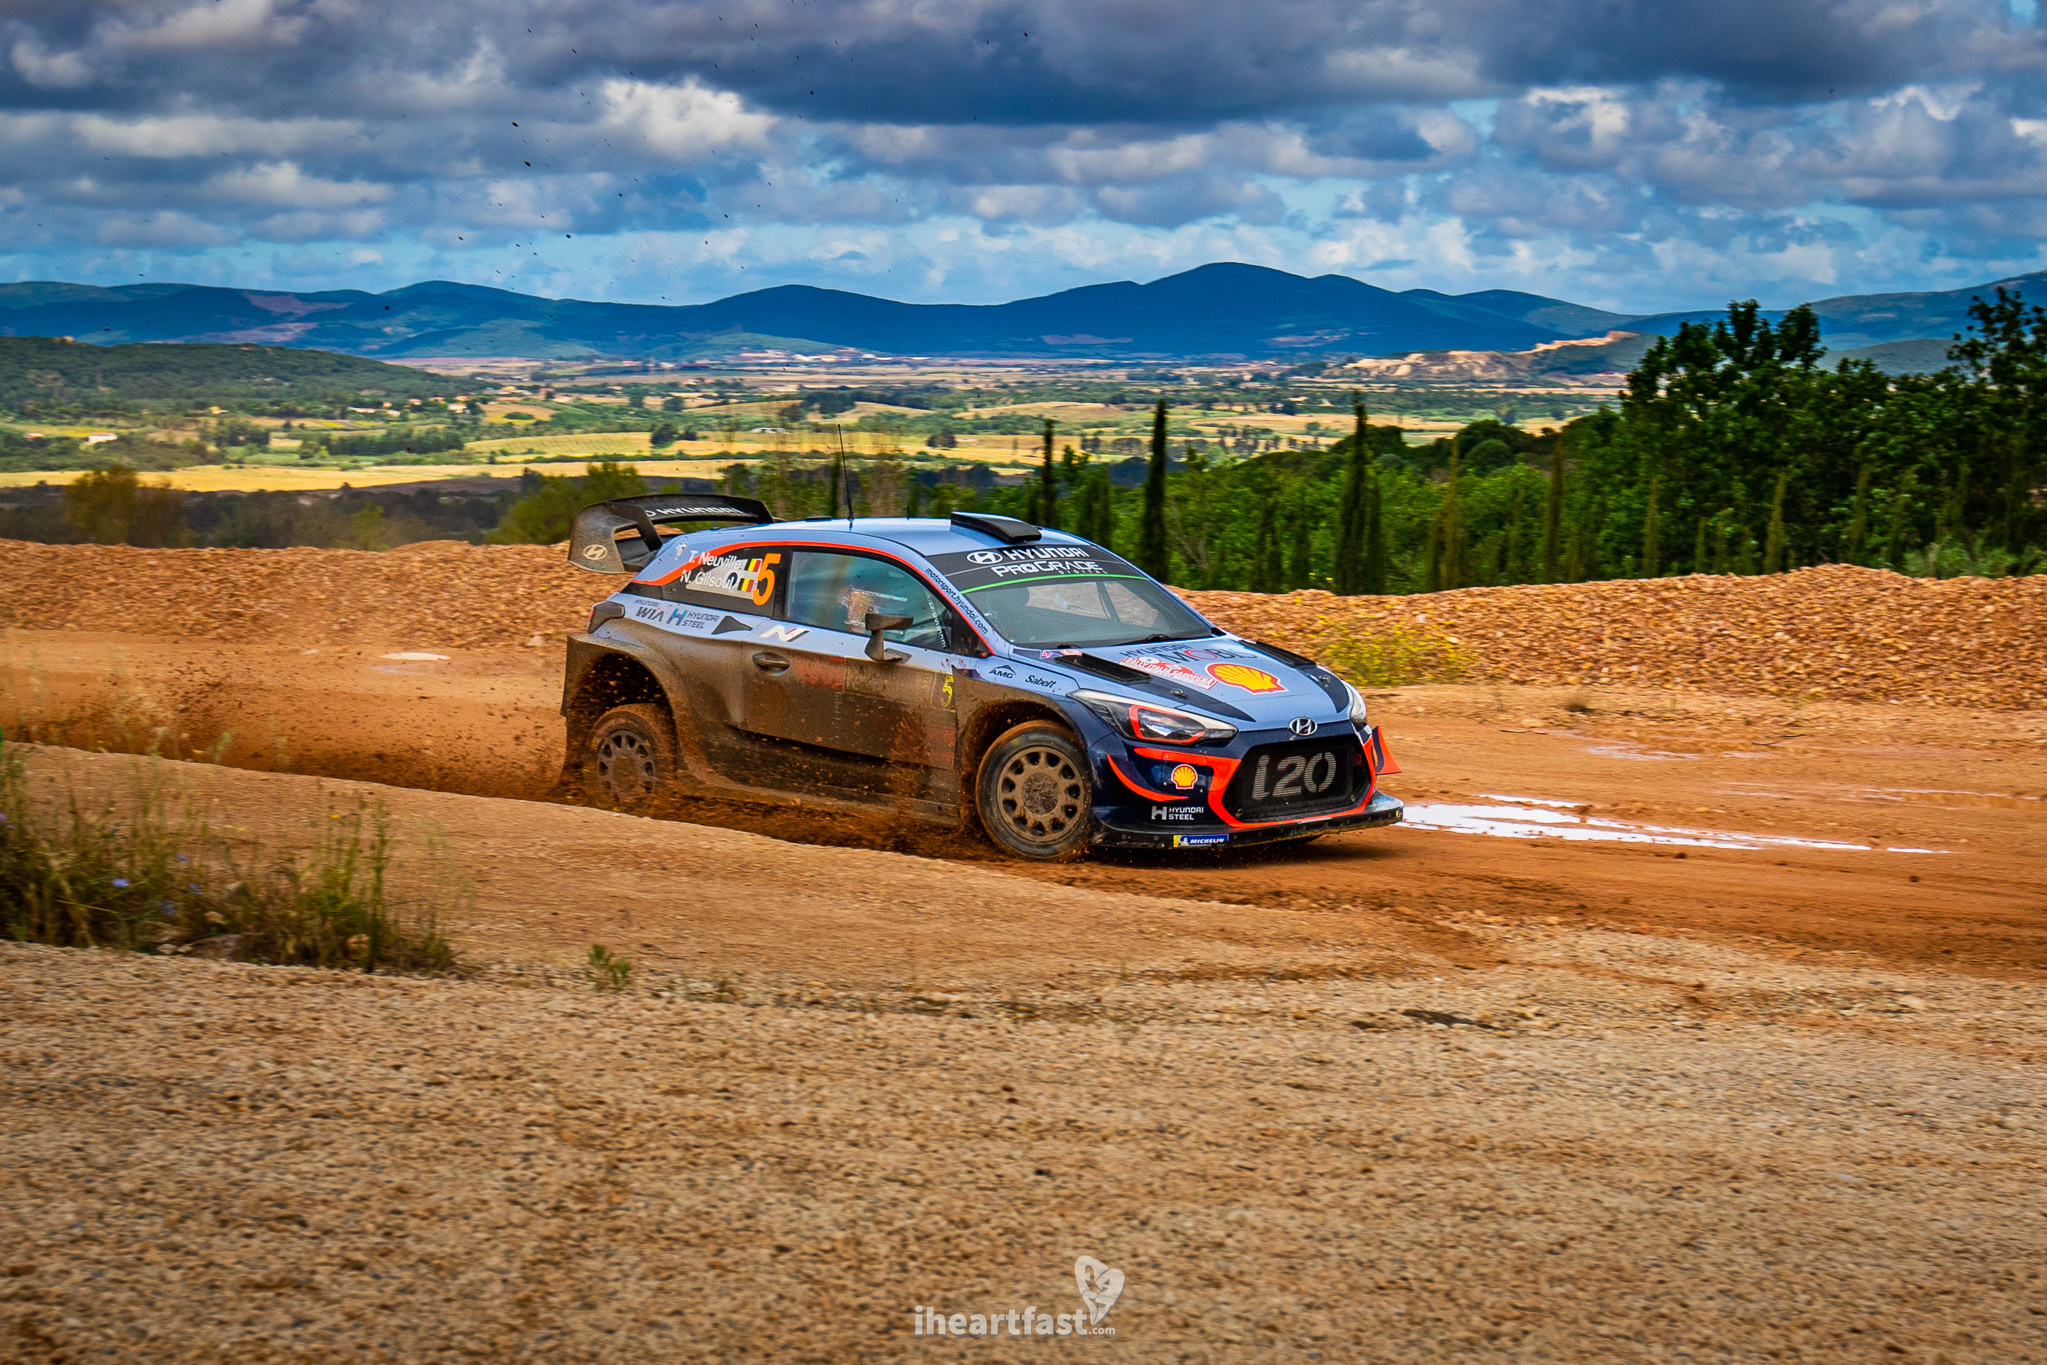 Thierry Neuville charging his Hyundai I20 to victory at WRC Rally Italia Sardegna